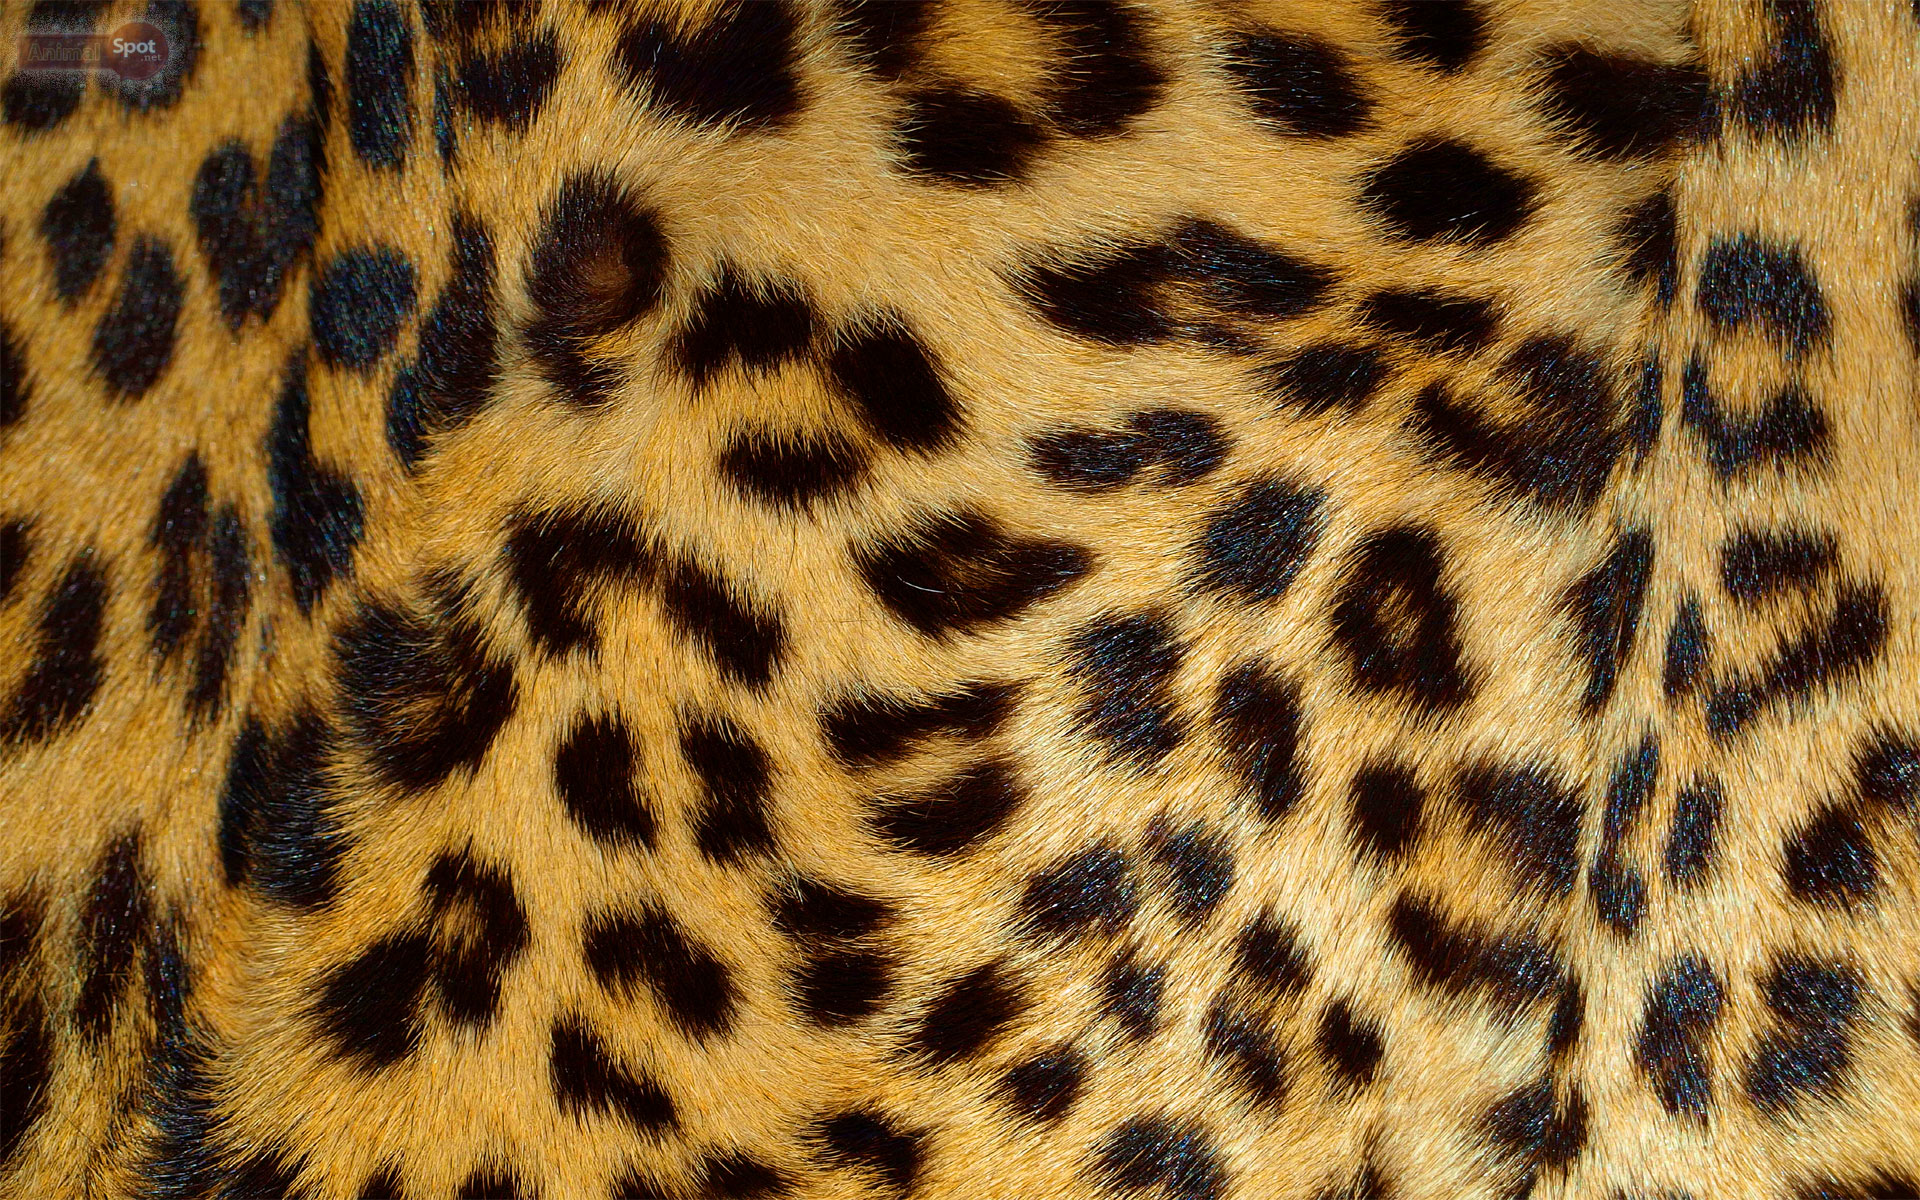 leopard wallpapers animal spot